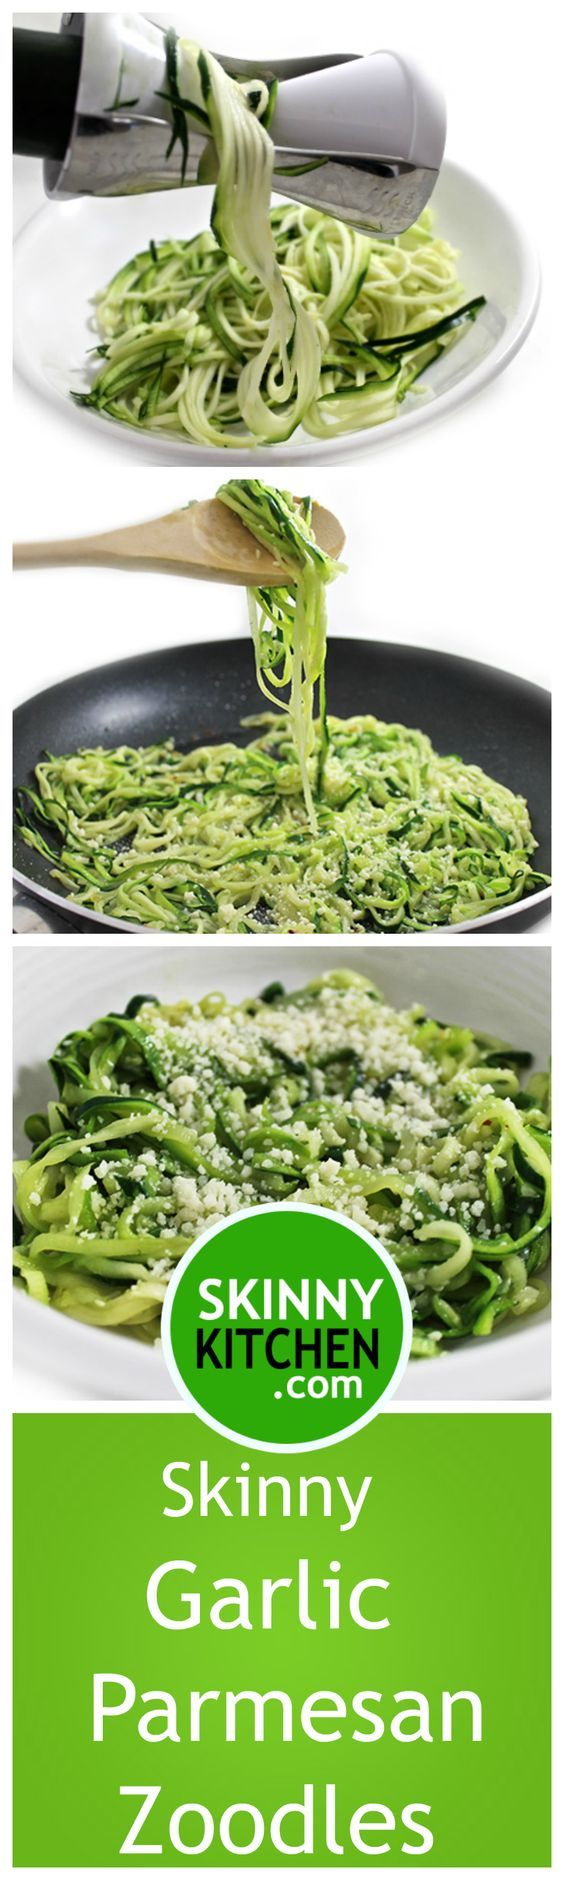 Garlic Parmesan Zoodles! On #huffpost today with these yummy noodles! http://www.huffingtonpost.com/nancy-fox/skinny-garlic-parmesan-zo_b_9236796.html